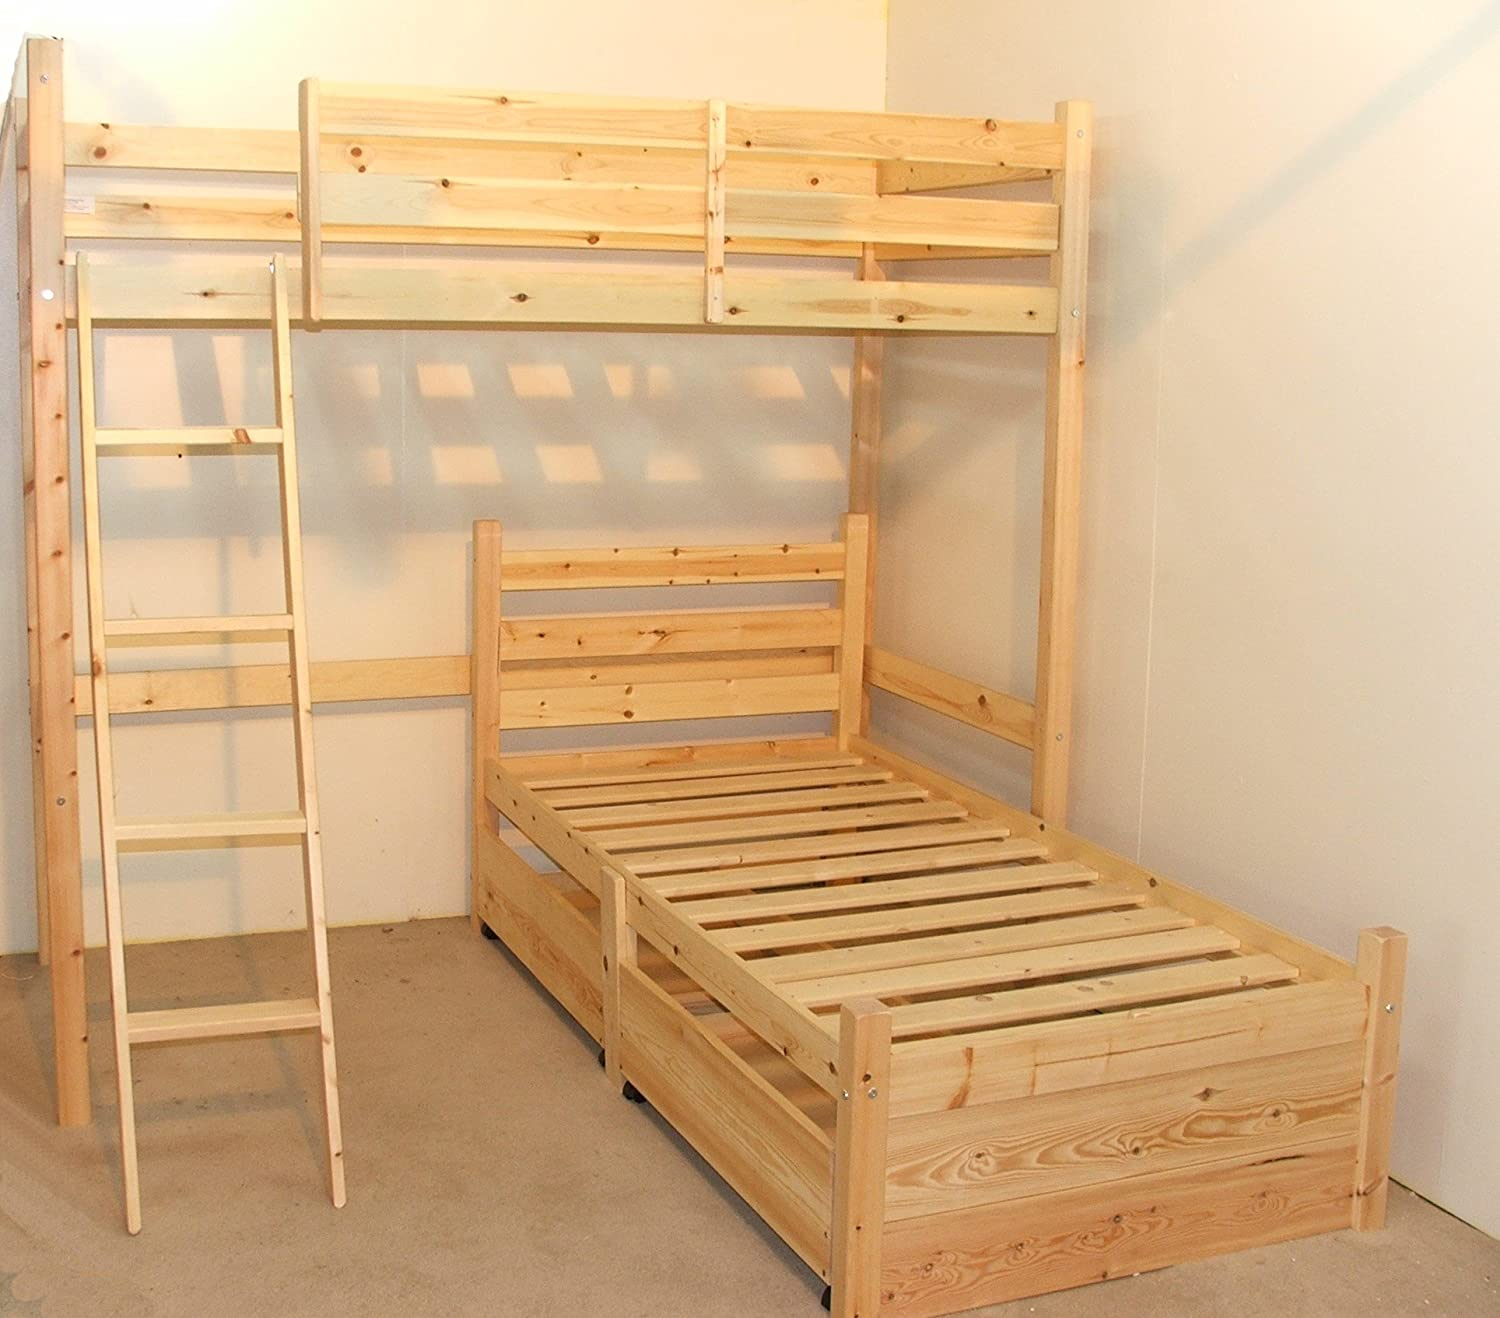 L Shaped 3ft Bunkbed Wooden Lshaped Bunk Bed For Kids With